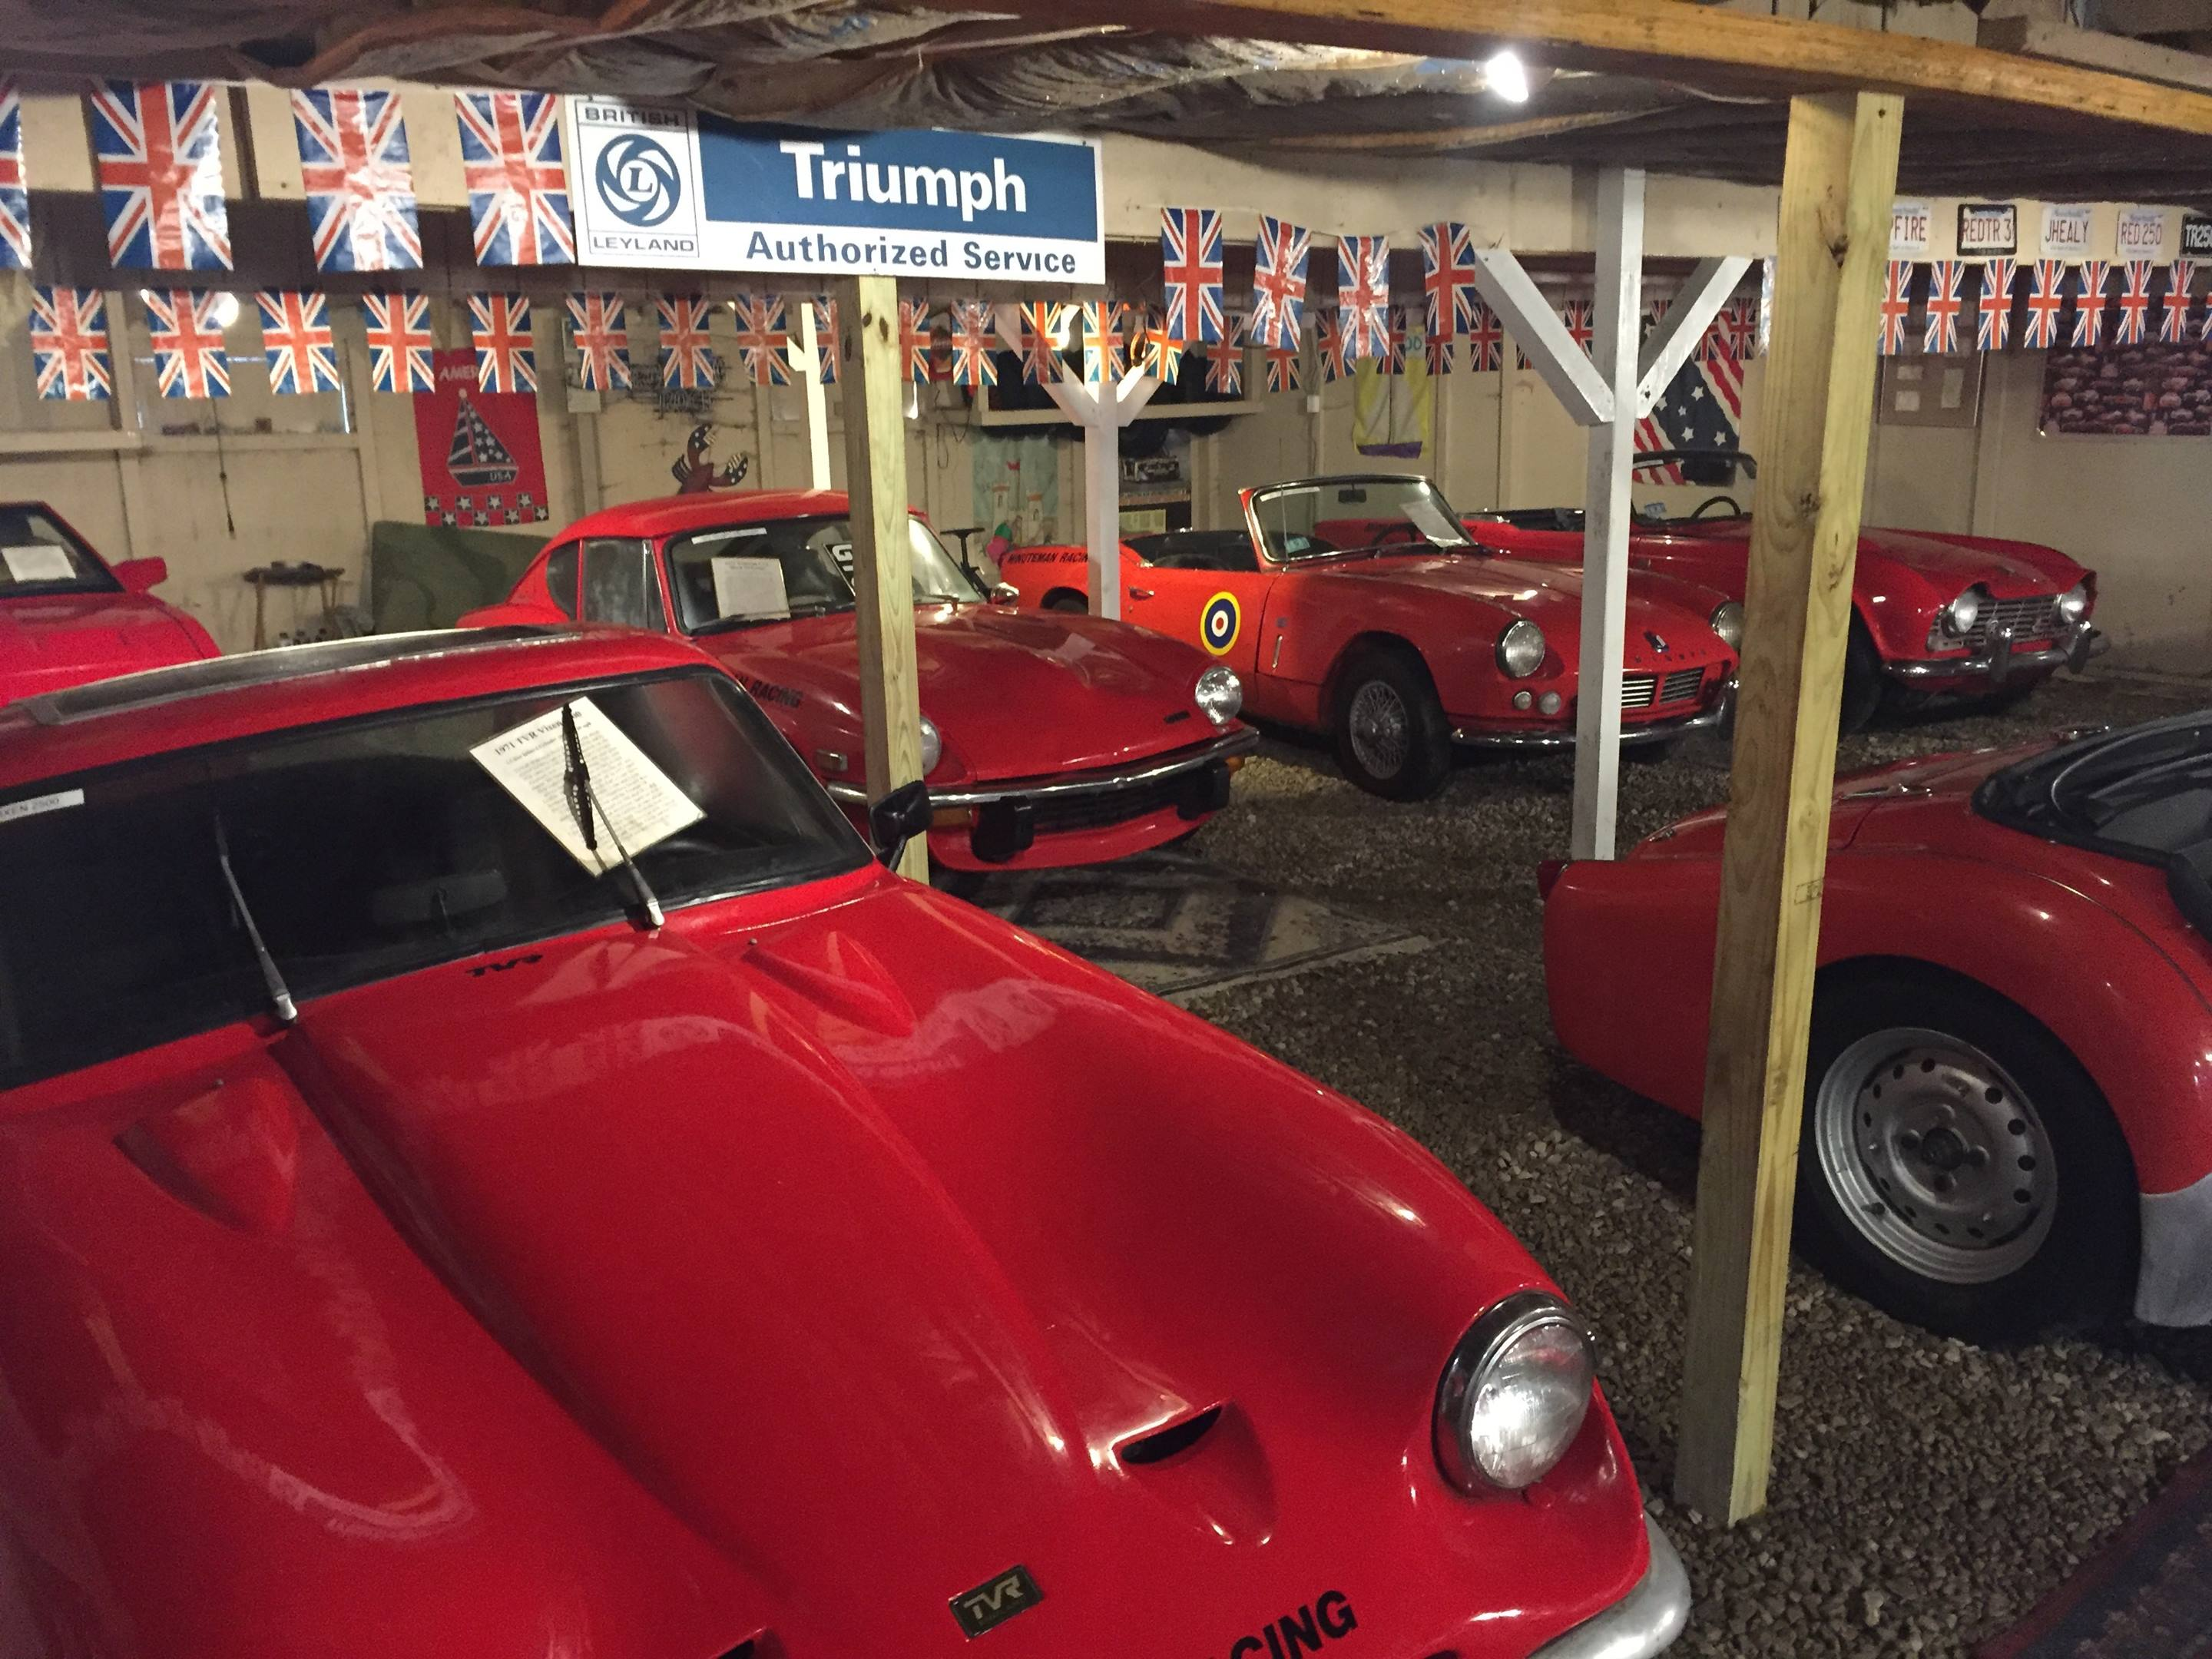 All the cars in the Toad Hall collection are red.